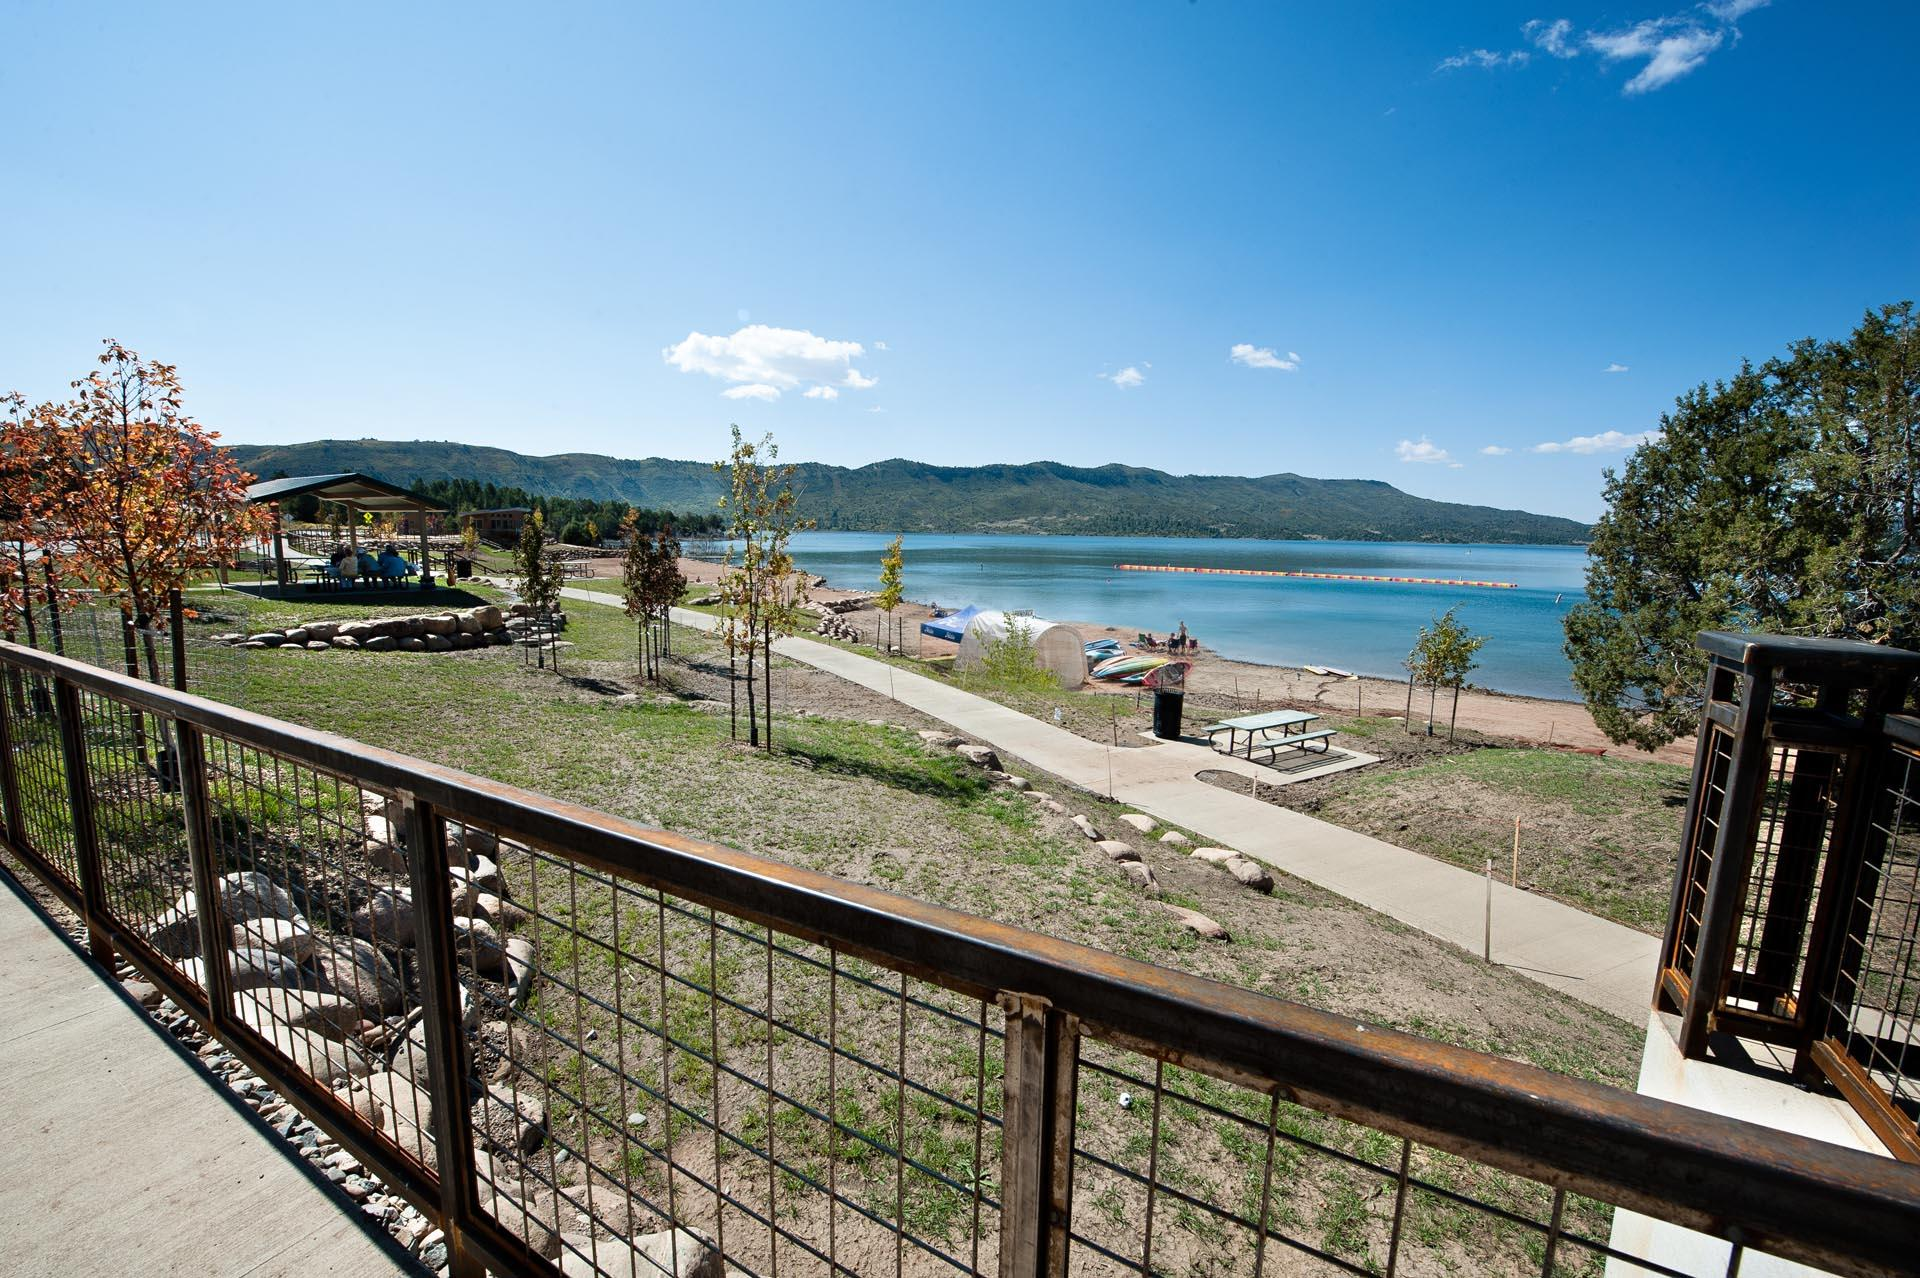 The home is less the a 10 minute drive from the newly opened Lake Nighthorse.